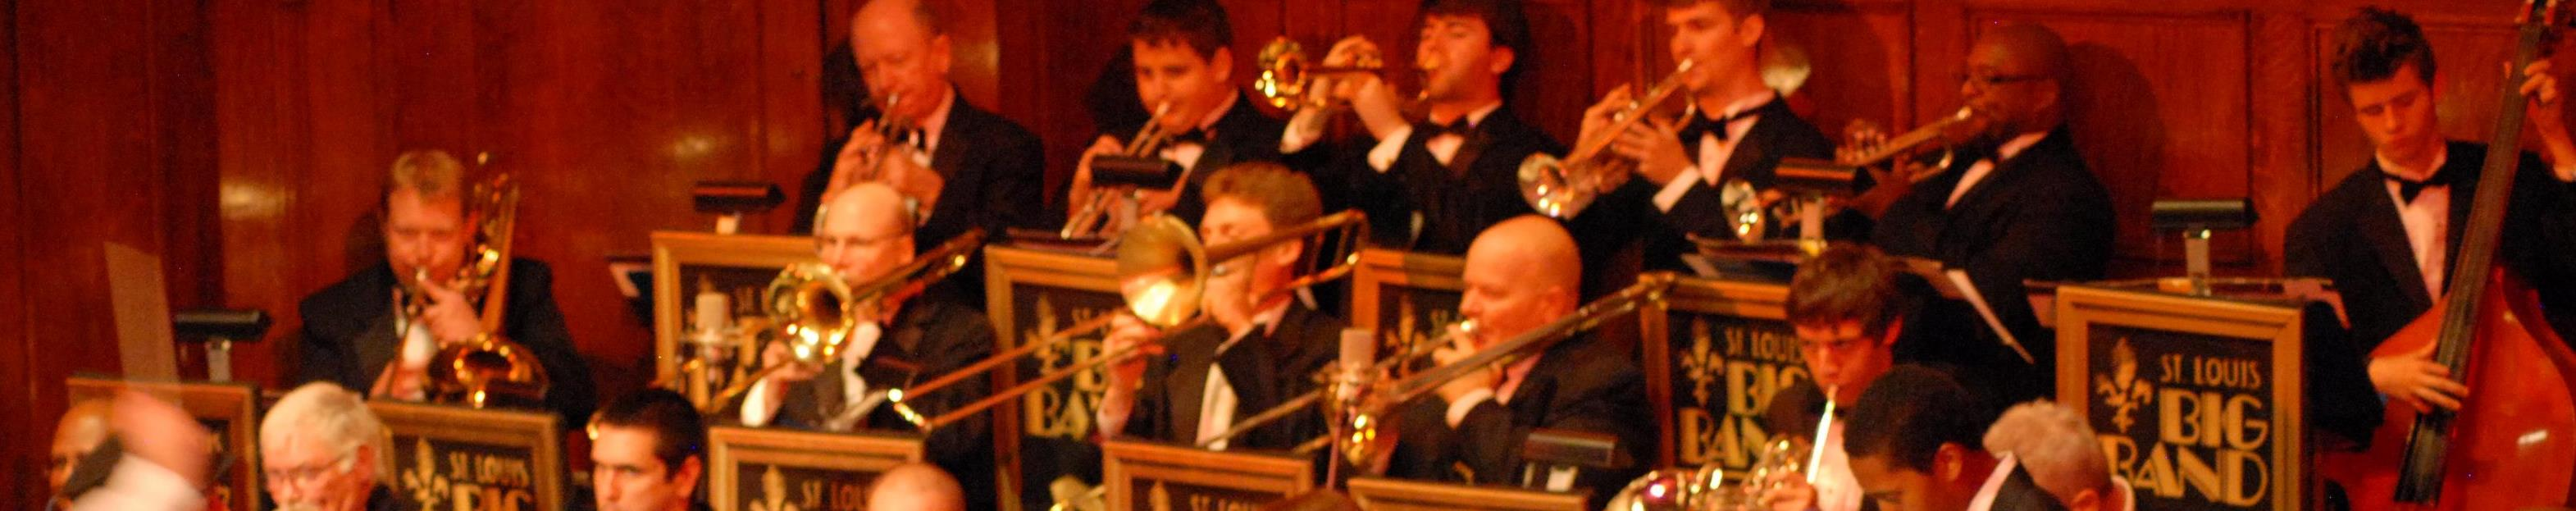 The St. Louis Big Band & St. Louis Variety Band